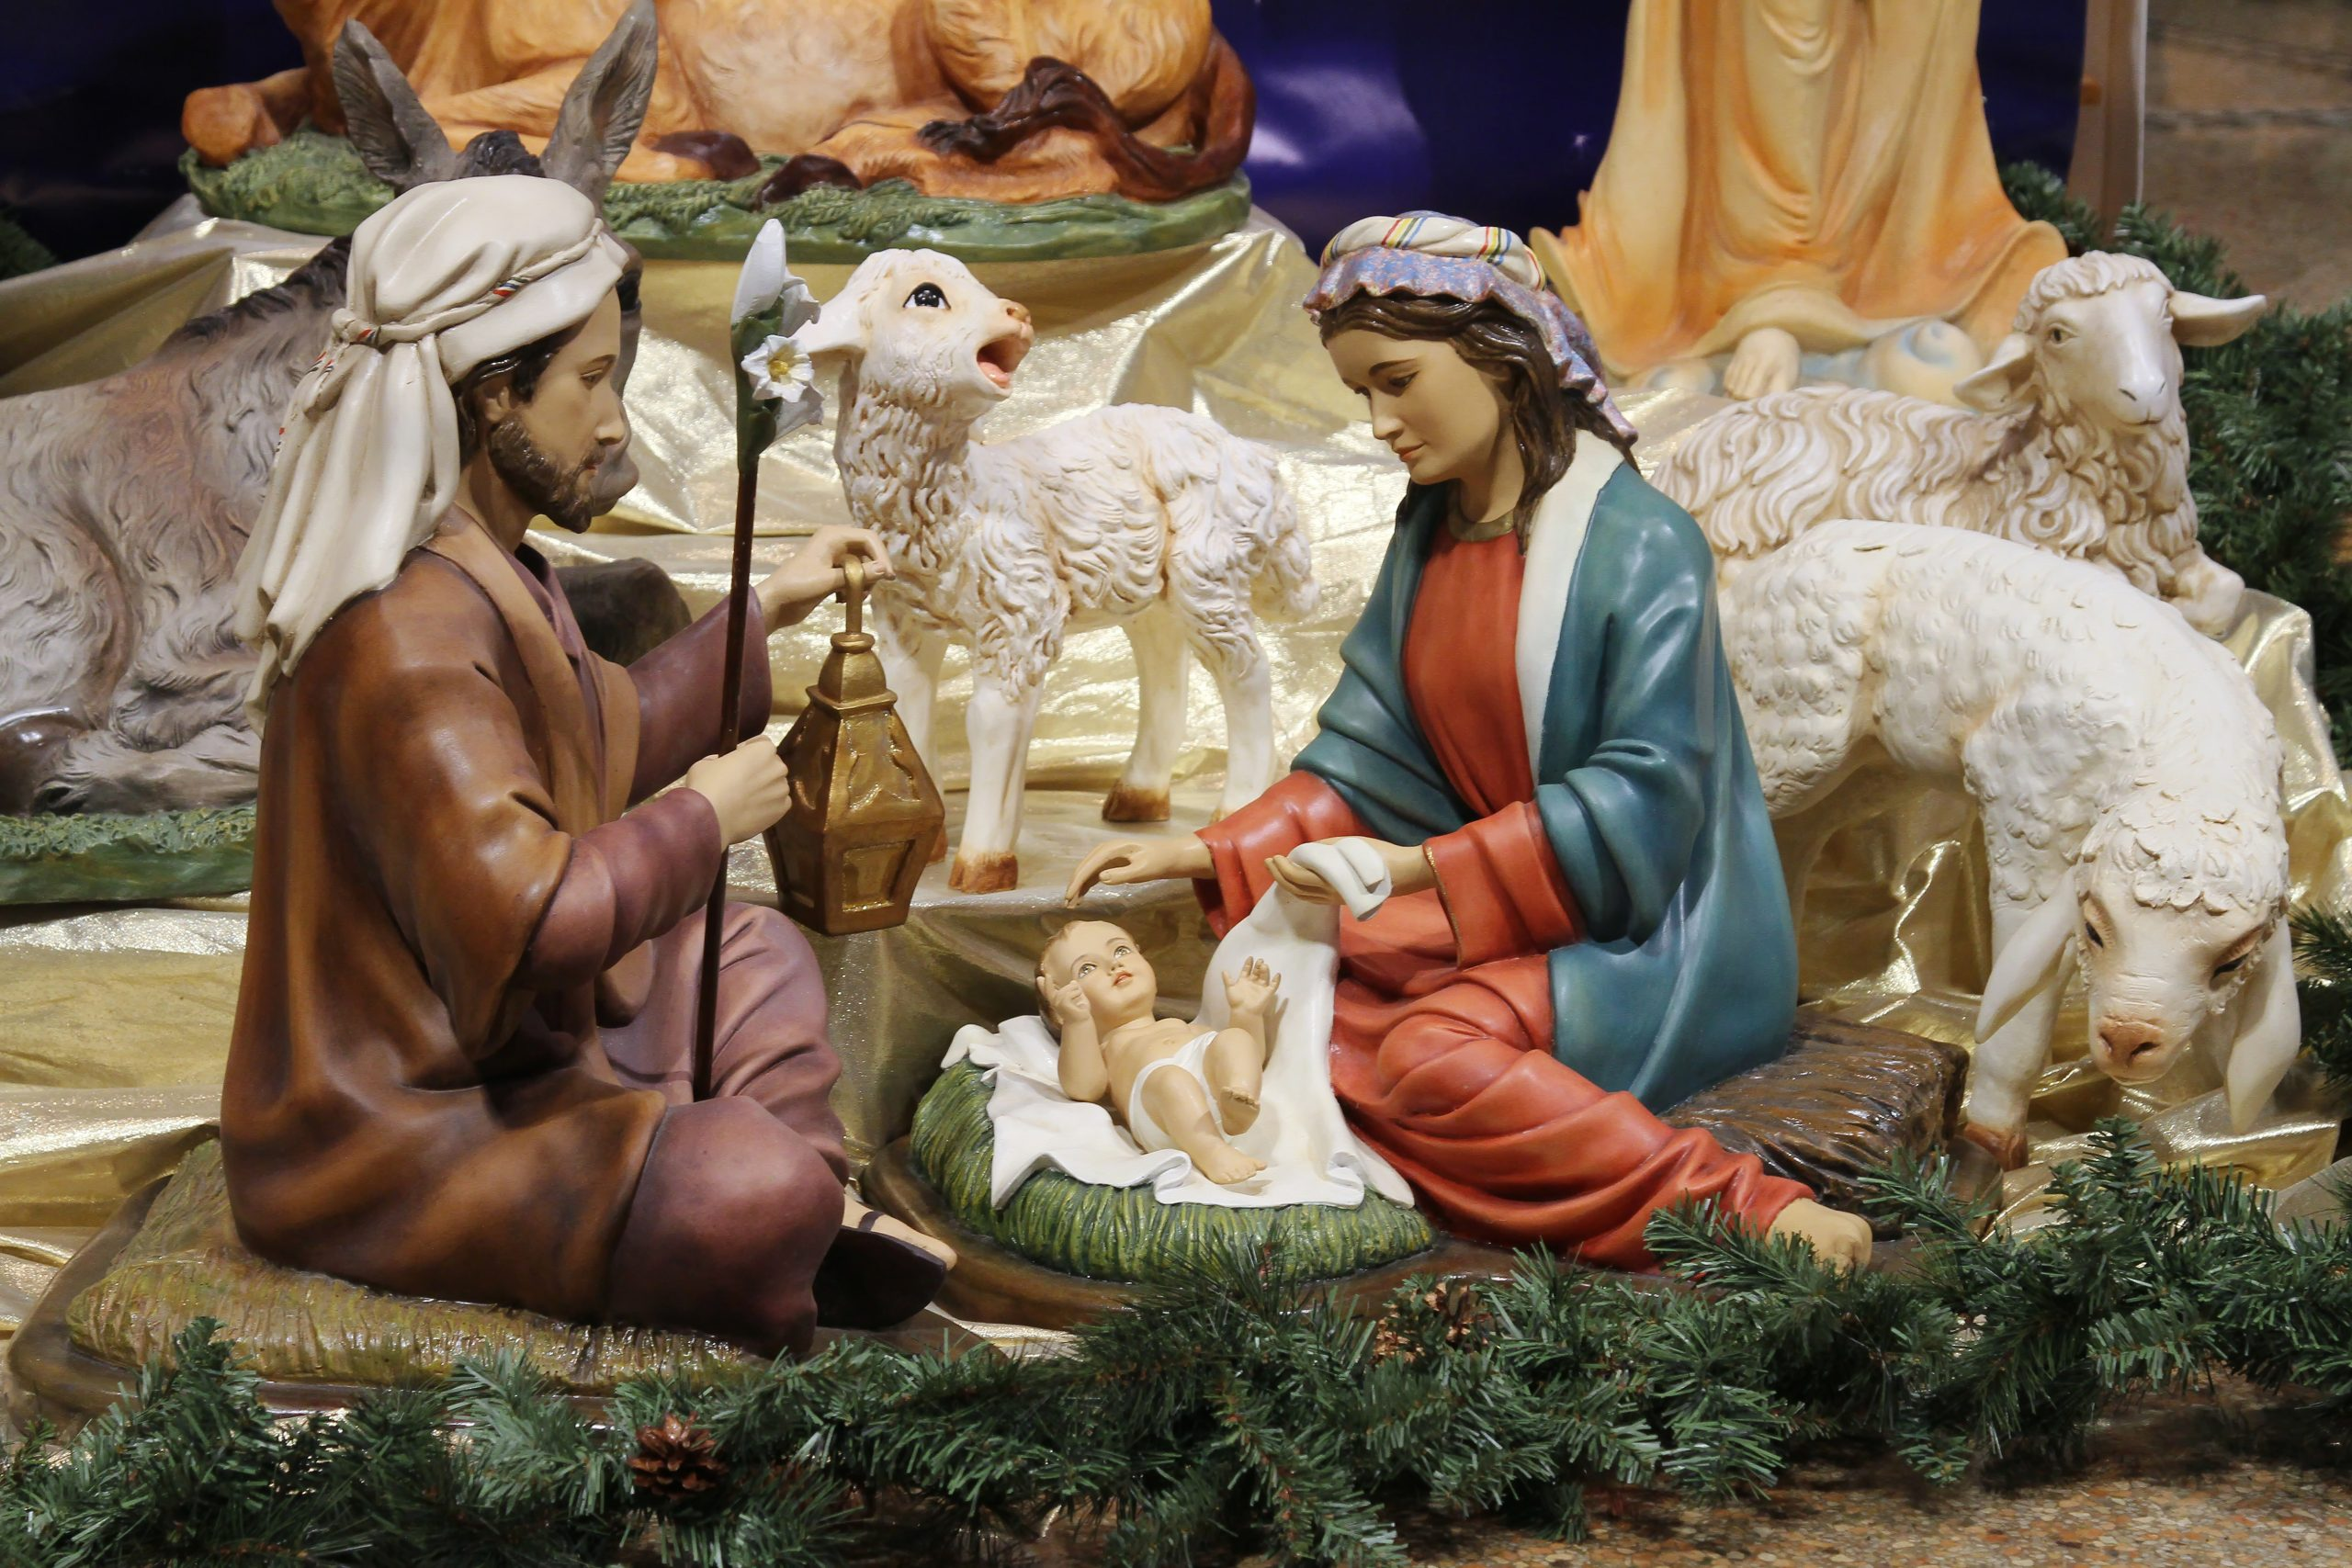 Close up of Jesus, Mary and Joseph from the nativity scene in front of the altar.